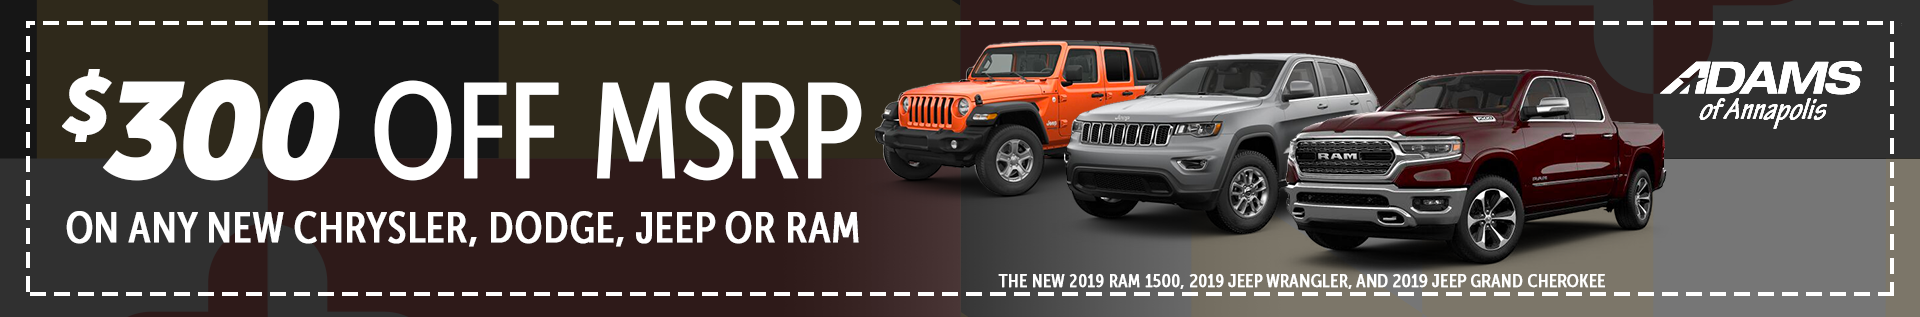 Save $300 off MSRP on a Chrysler, Dodge, Jeep or RAM.